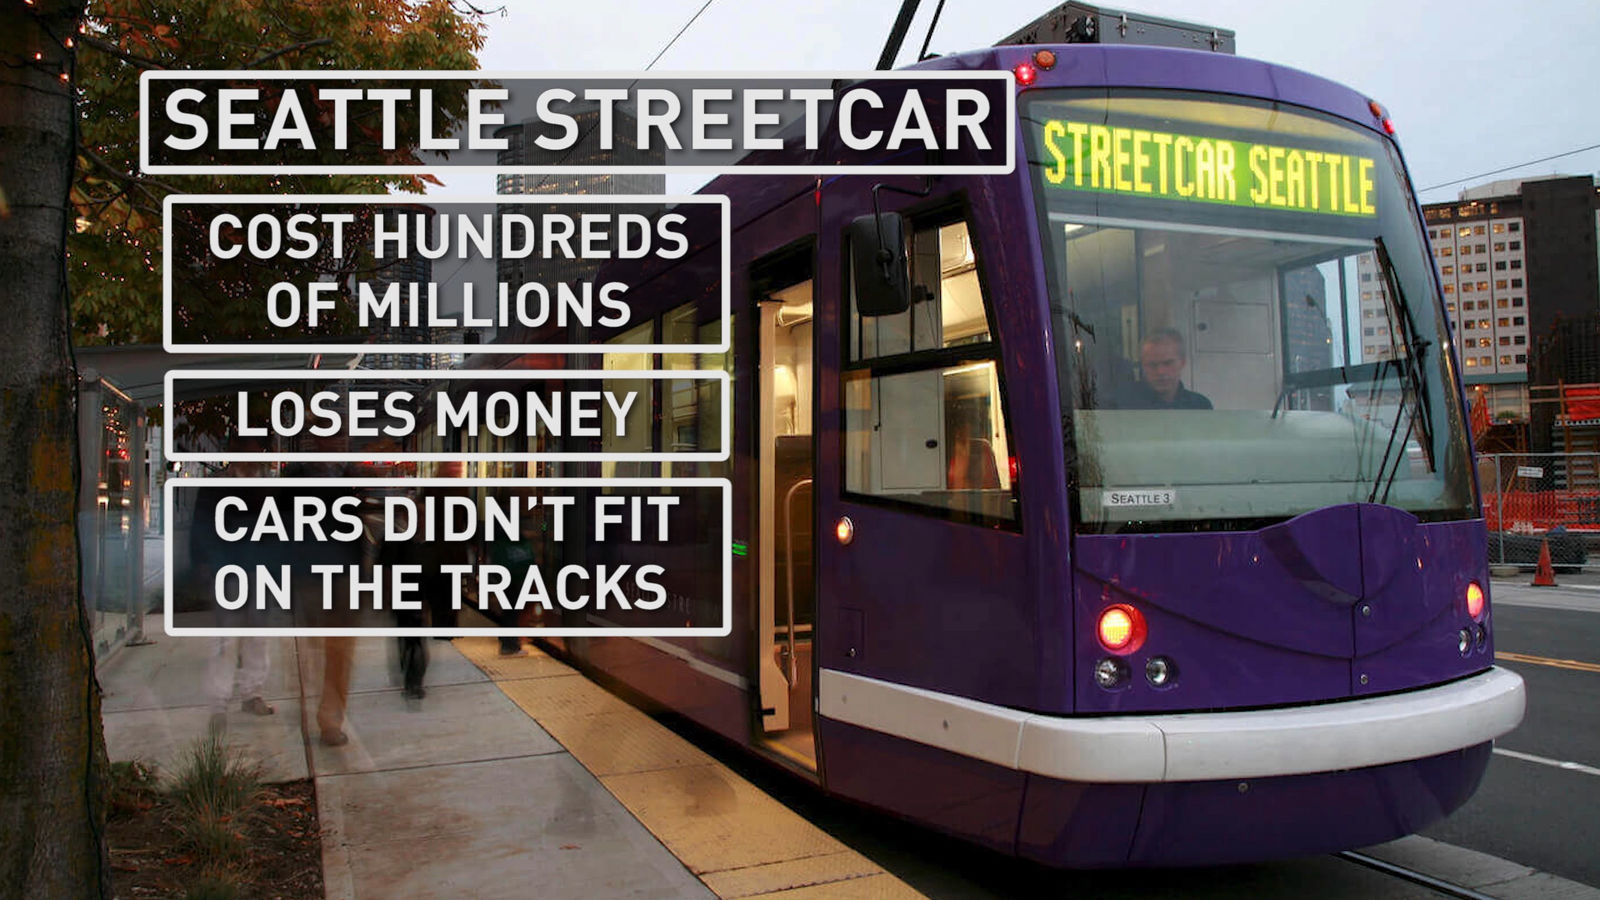 Seattle's streetcar has made headlines for its complications and cost (Photo: Alex Brauer, Sinclair Broadcast Group)